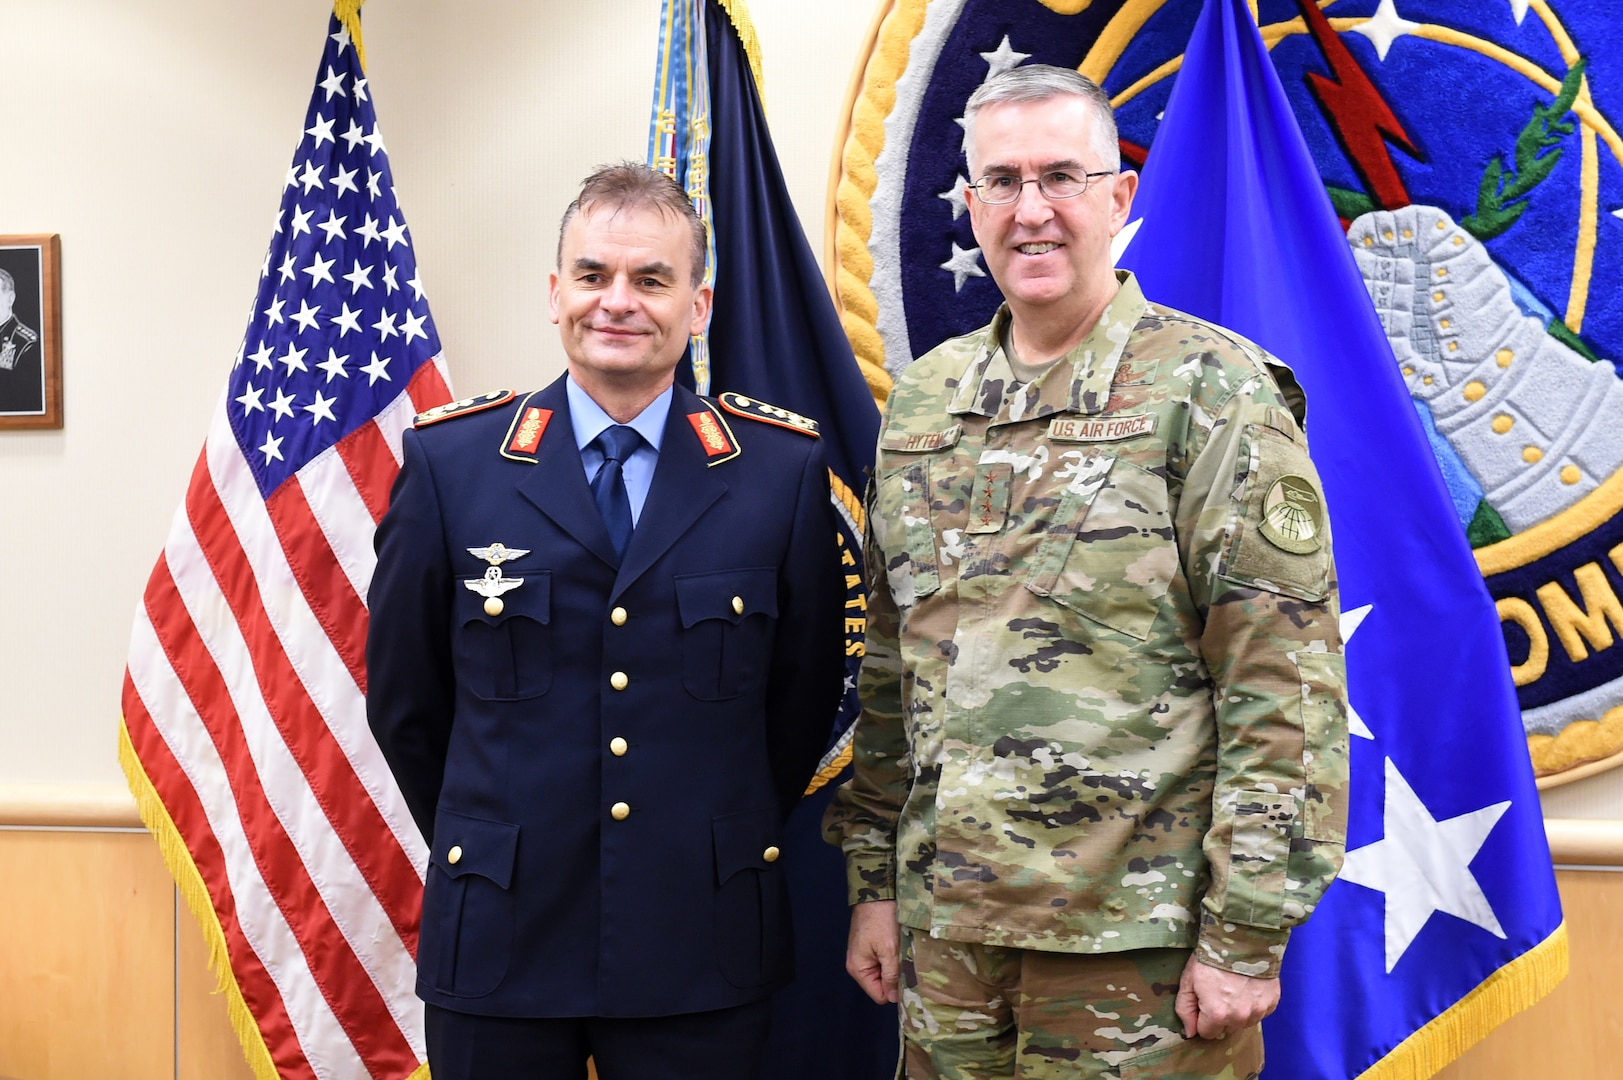 """Lt. Gen. Christian Badia (left), German Federal Ministry of Defence, head of the strategic defence planning and concepts division, meets with Gen. John Hyten (right), commander of U.S. Strategic Command, during his visit on Feb. 4, 2019, at Offutt Air Force Base, Neb. Badia visited to discuss topics of deterrence, and the importance of alliances and partnerships.   """"Strong transatlantic ties within NATO are most important for our nations' security within and beyond NATO, said Badia. """"With Germany contributing to deterrence by a wide range of capabilities, it goes without saying that an intensive collaboration is required to coherently develop policy, capabilities, doctrine etc. within this pillar of deterrence."""" (U.S. Air Force photo by Master Sgt. April Wickes)"""